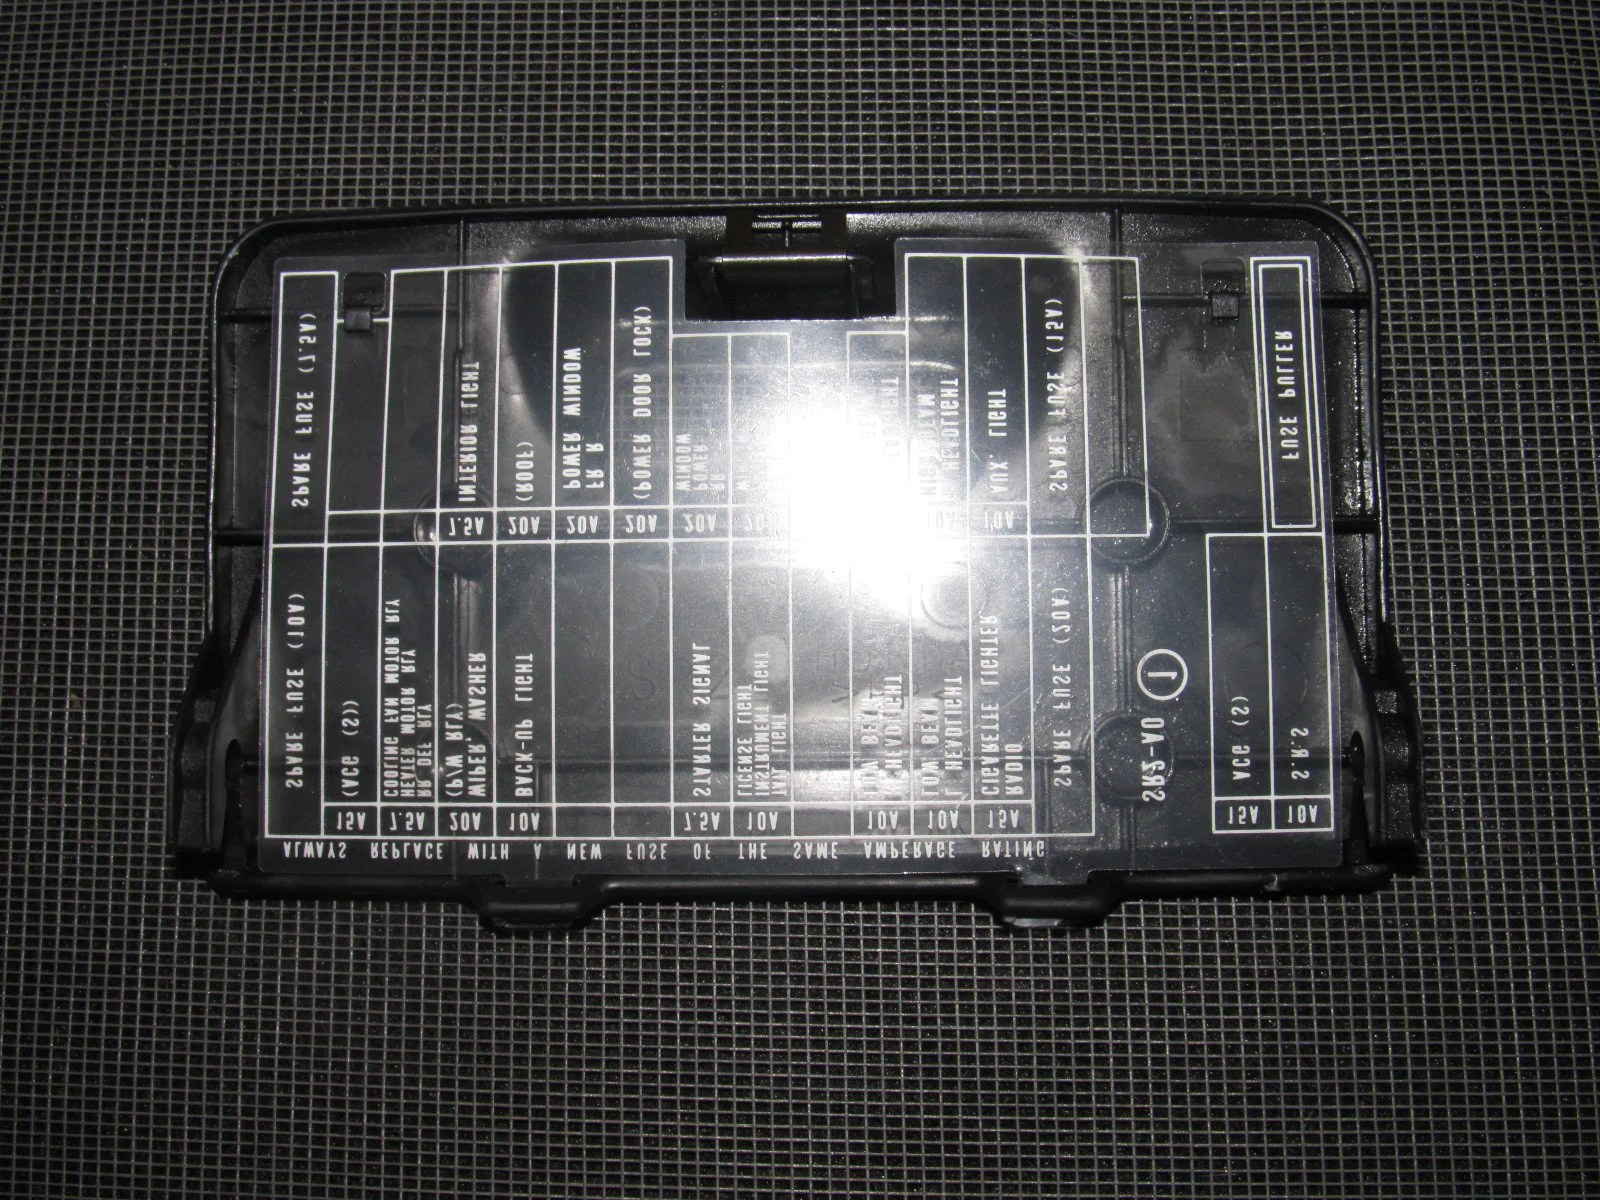 07 honda civic fuse diagram obiee 11g architecture 96 97 98 99 00 oem interior box cover